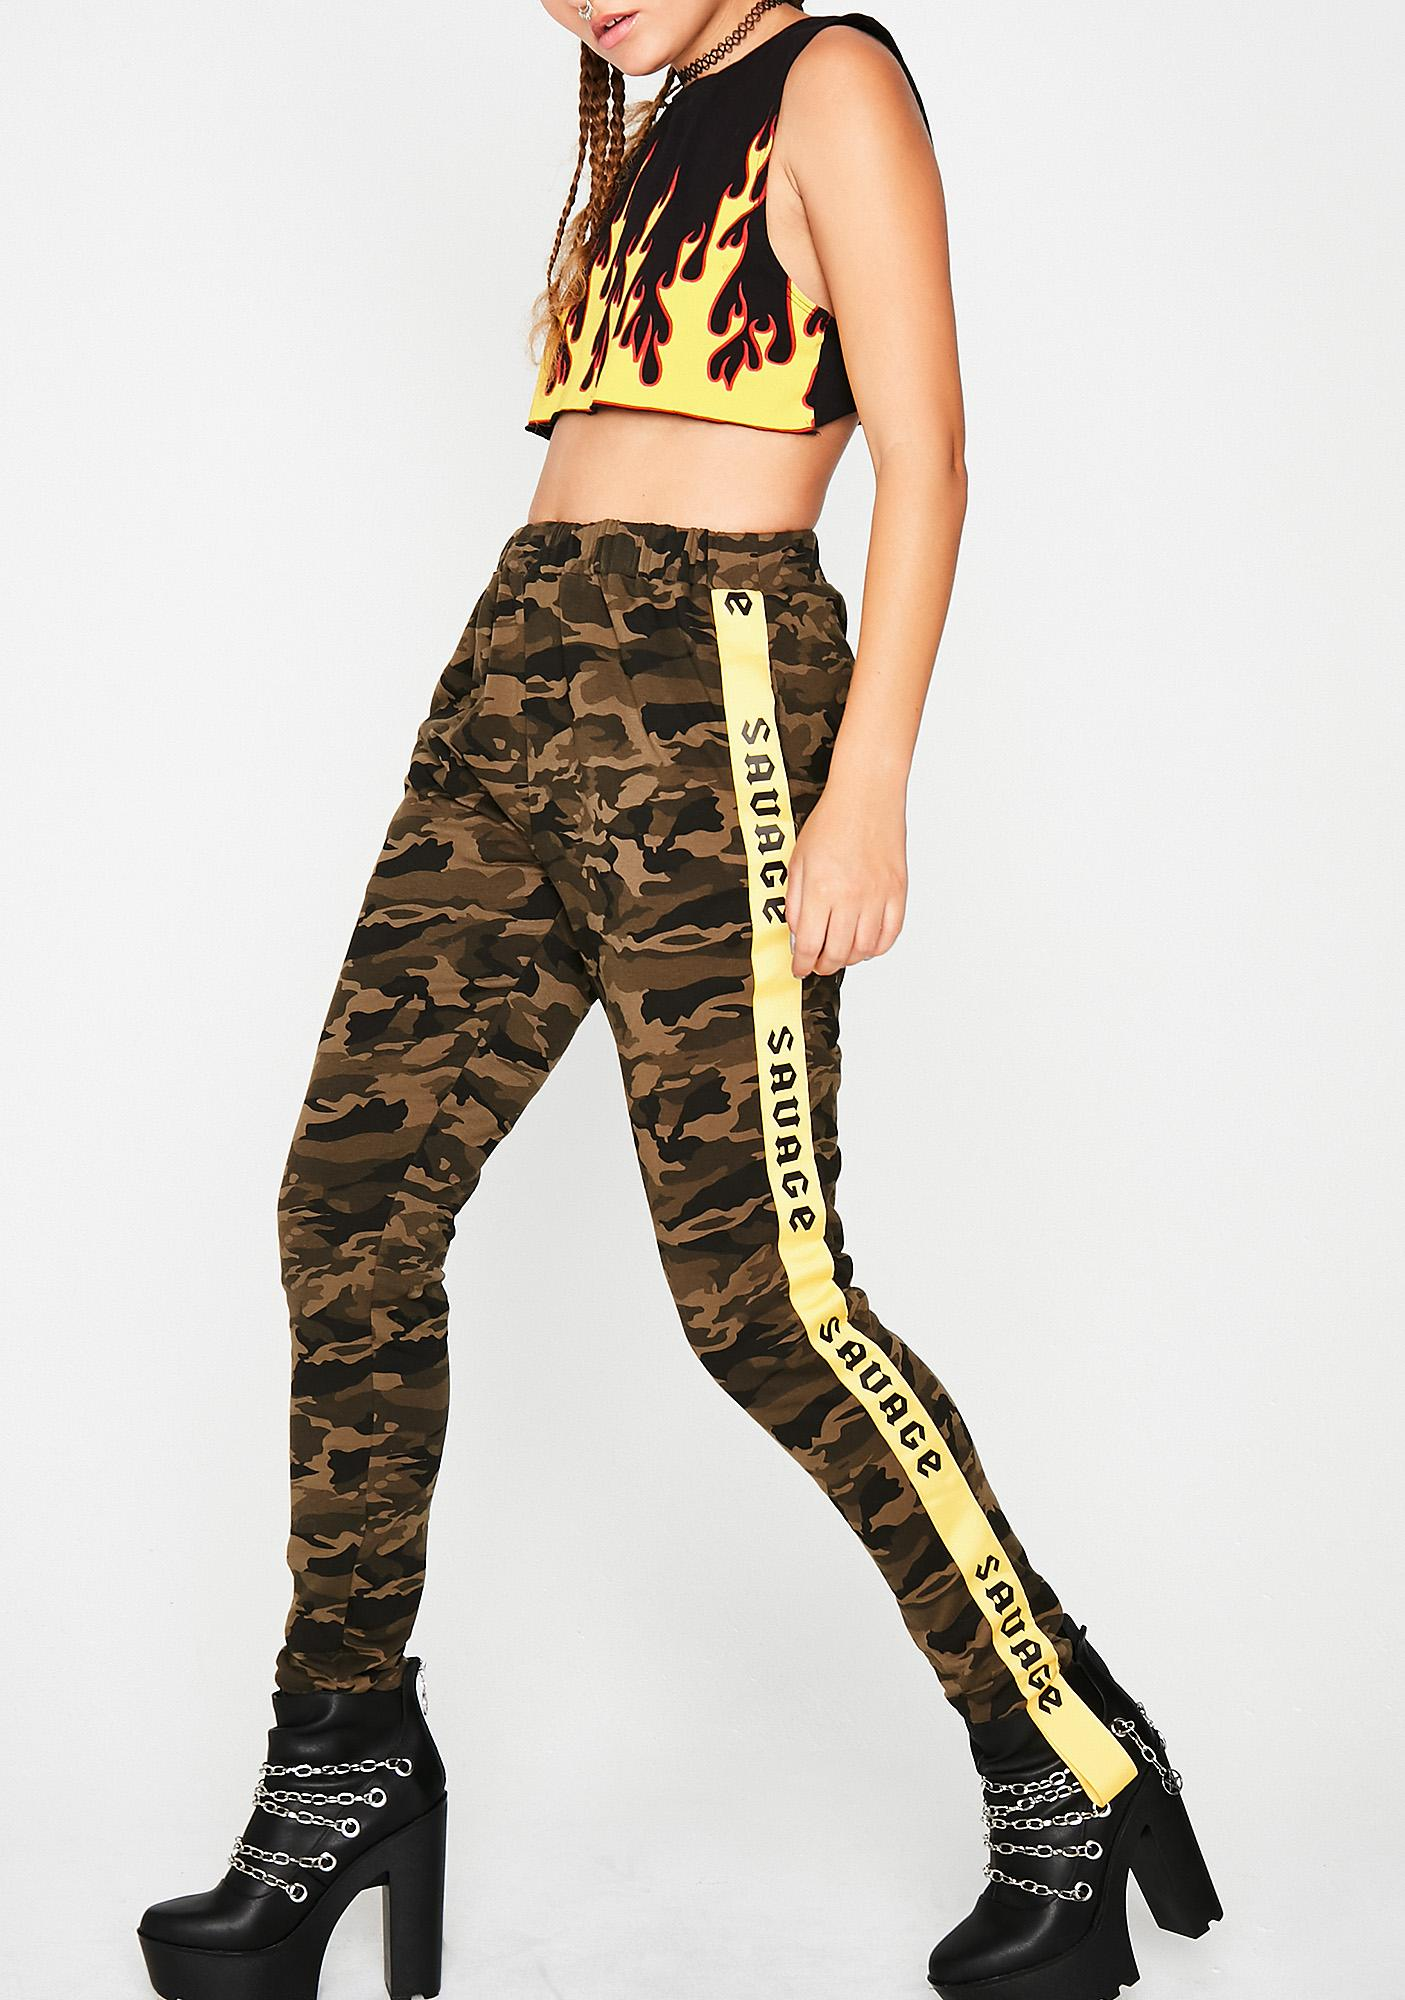 Savage Ways Camo Pants